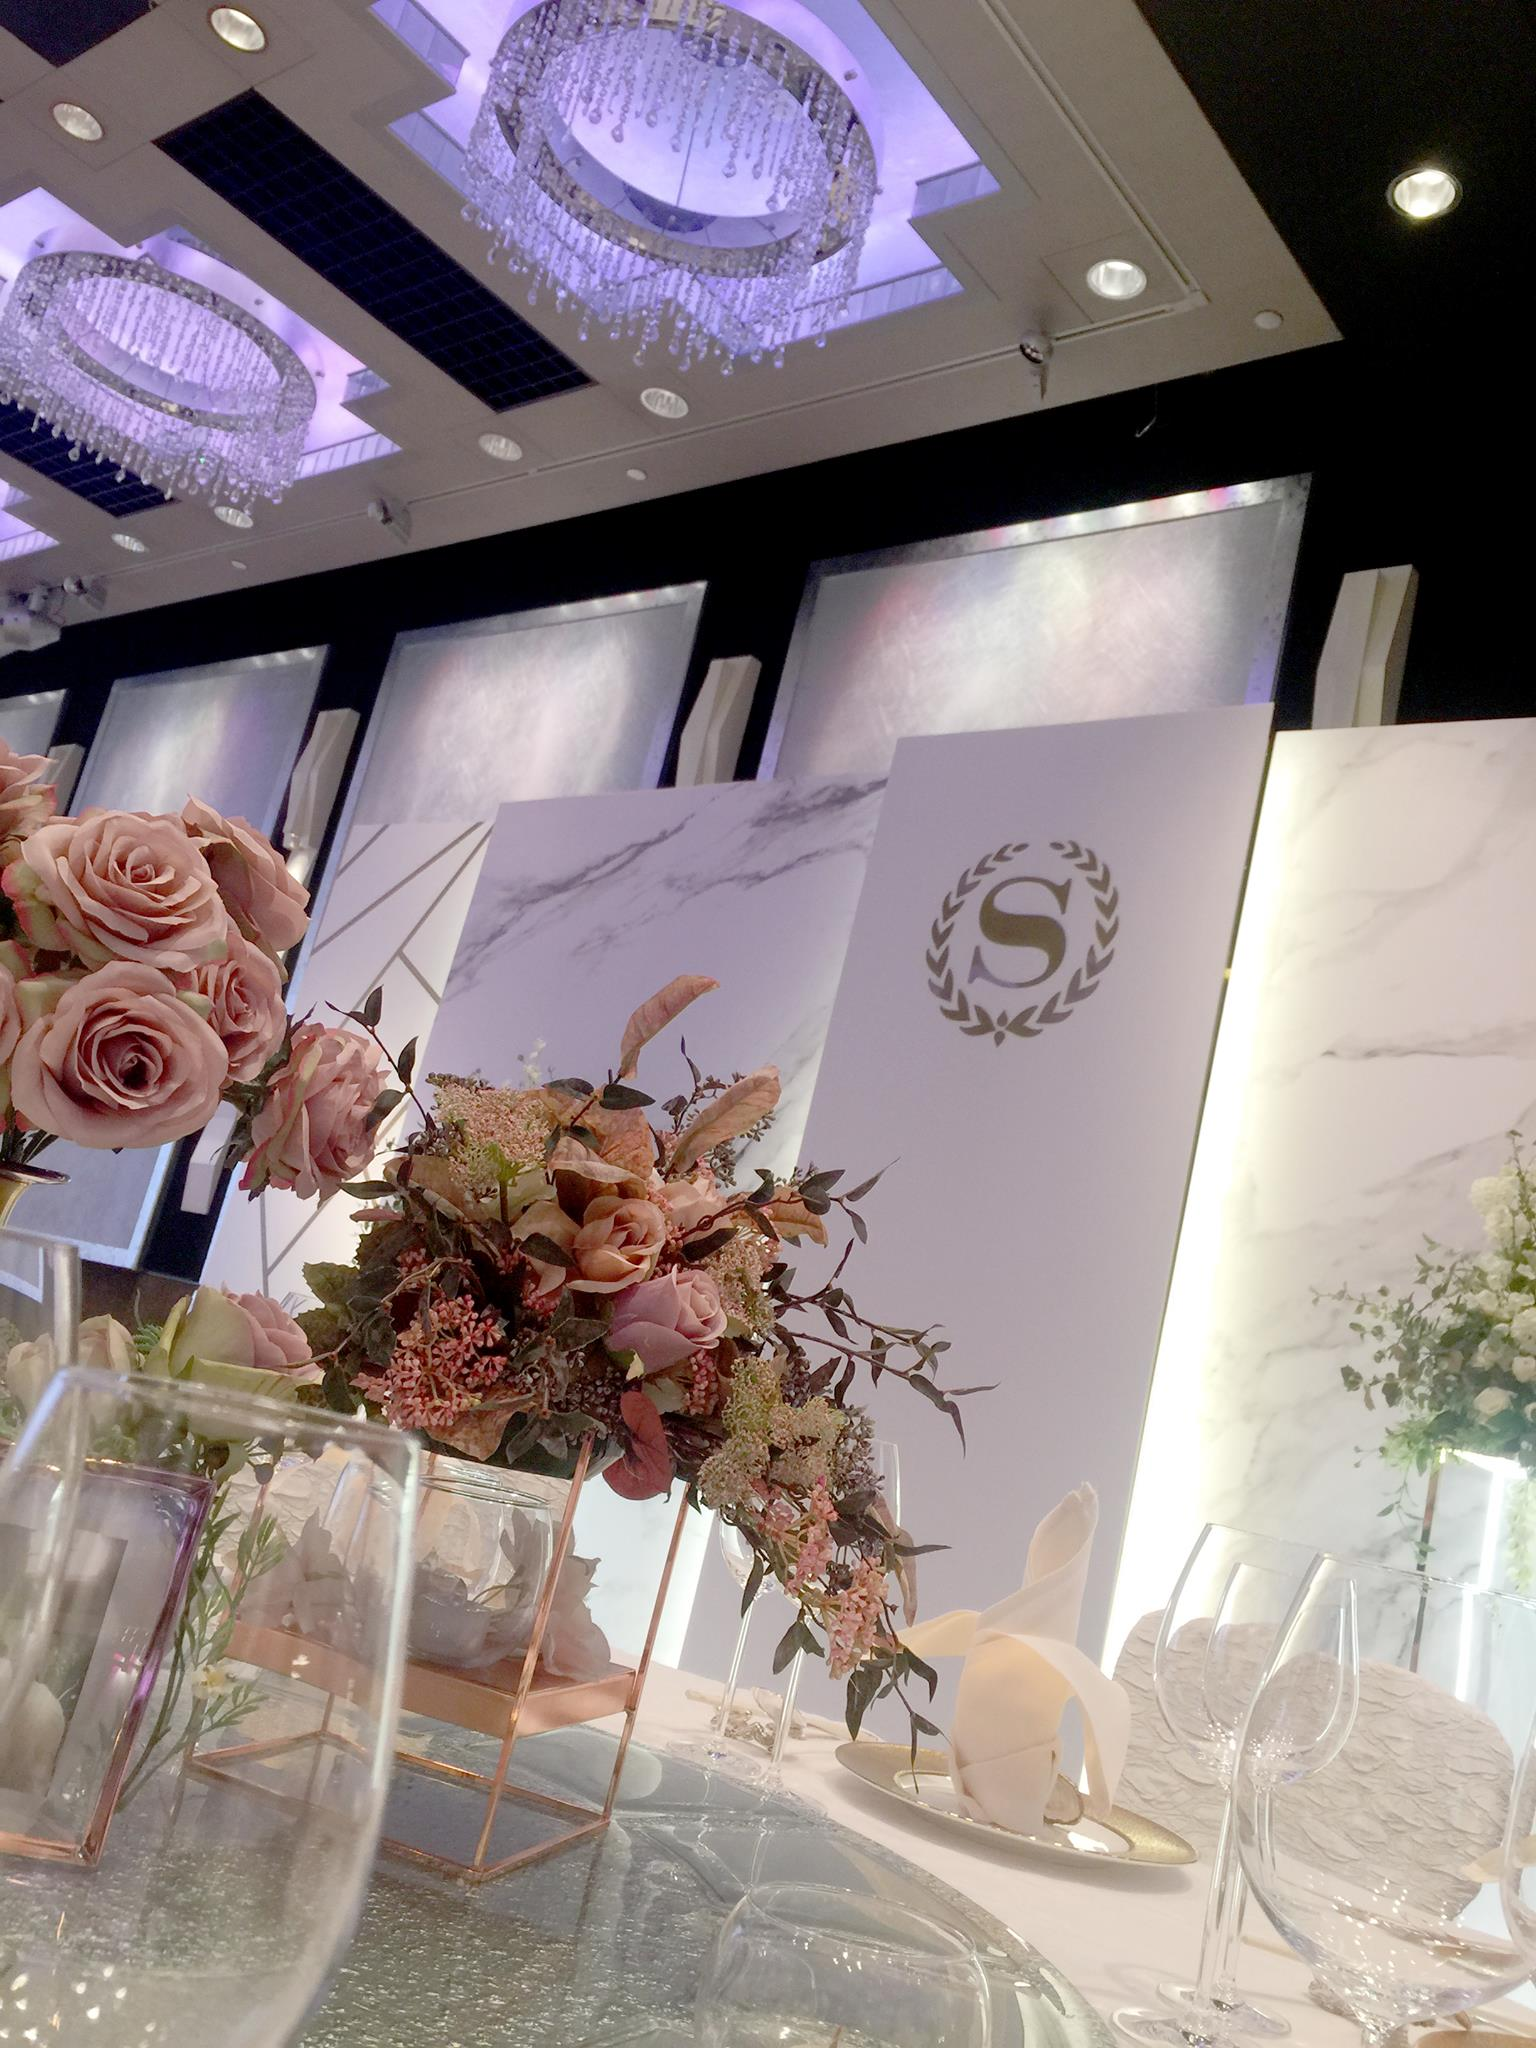 Wedding Perfected - Wedding Trend Showcase & Bridal Fair 2017 at Sheraton Hong Kong Hotel & Towers